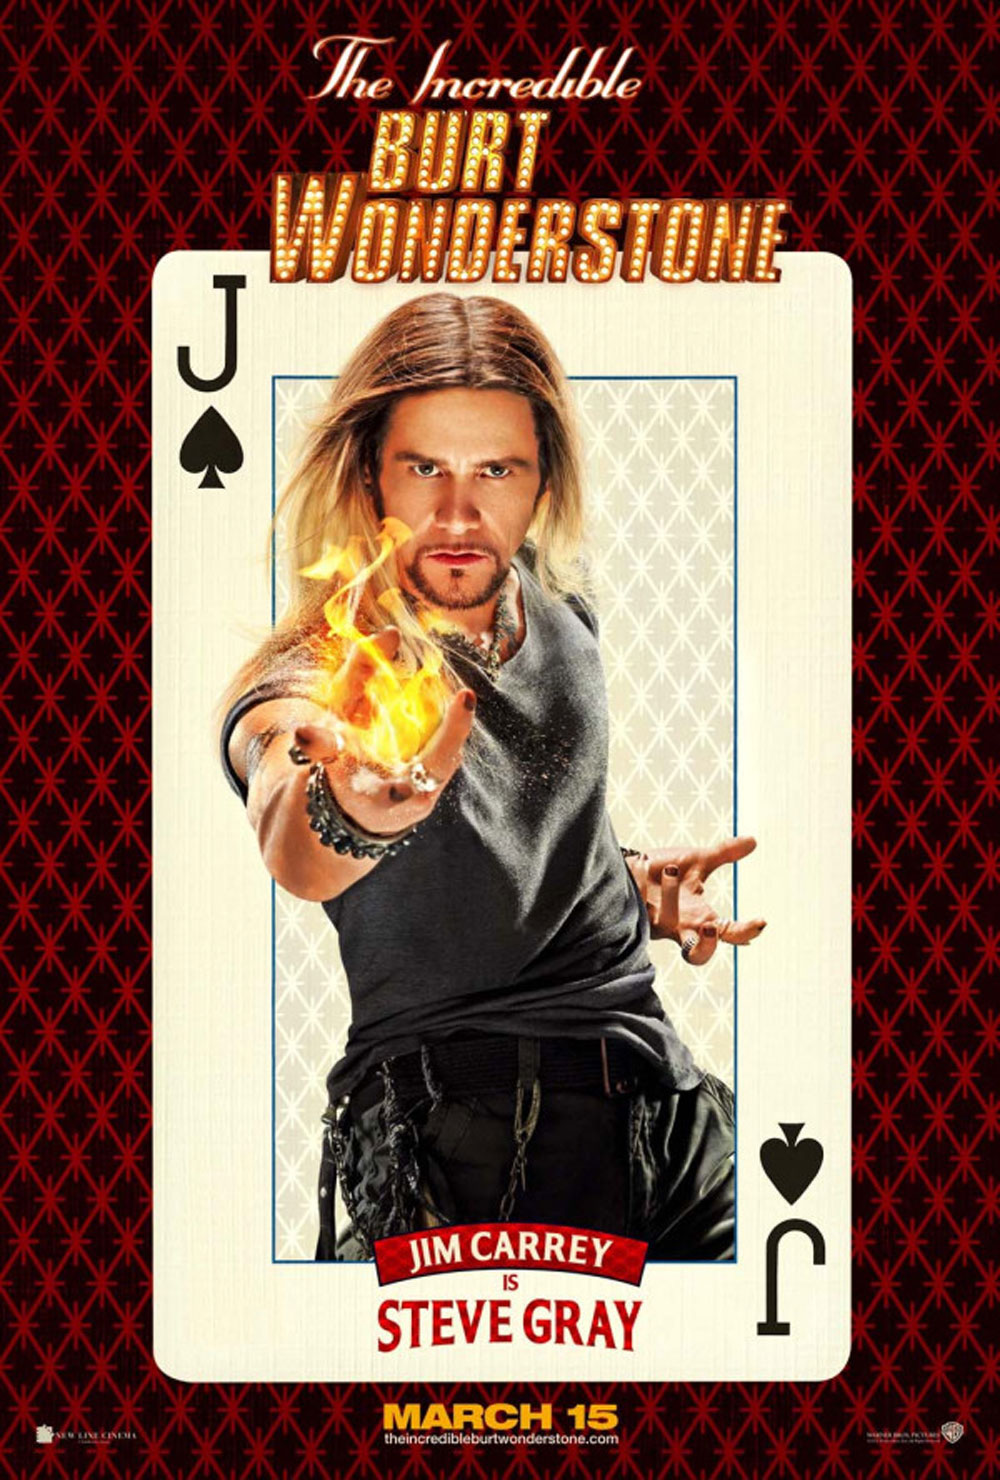 The-Incredible-Burt-Wonderstone movie poster